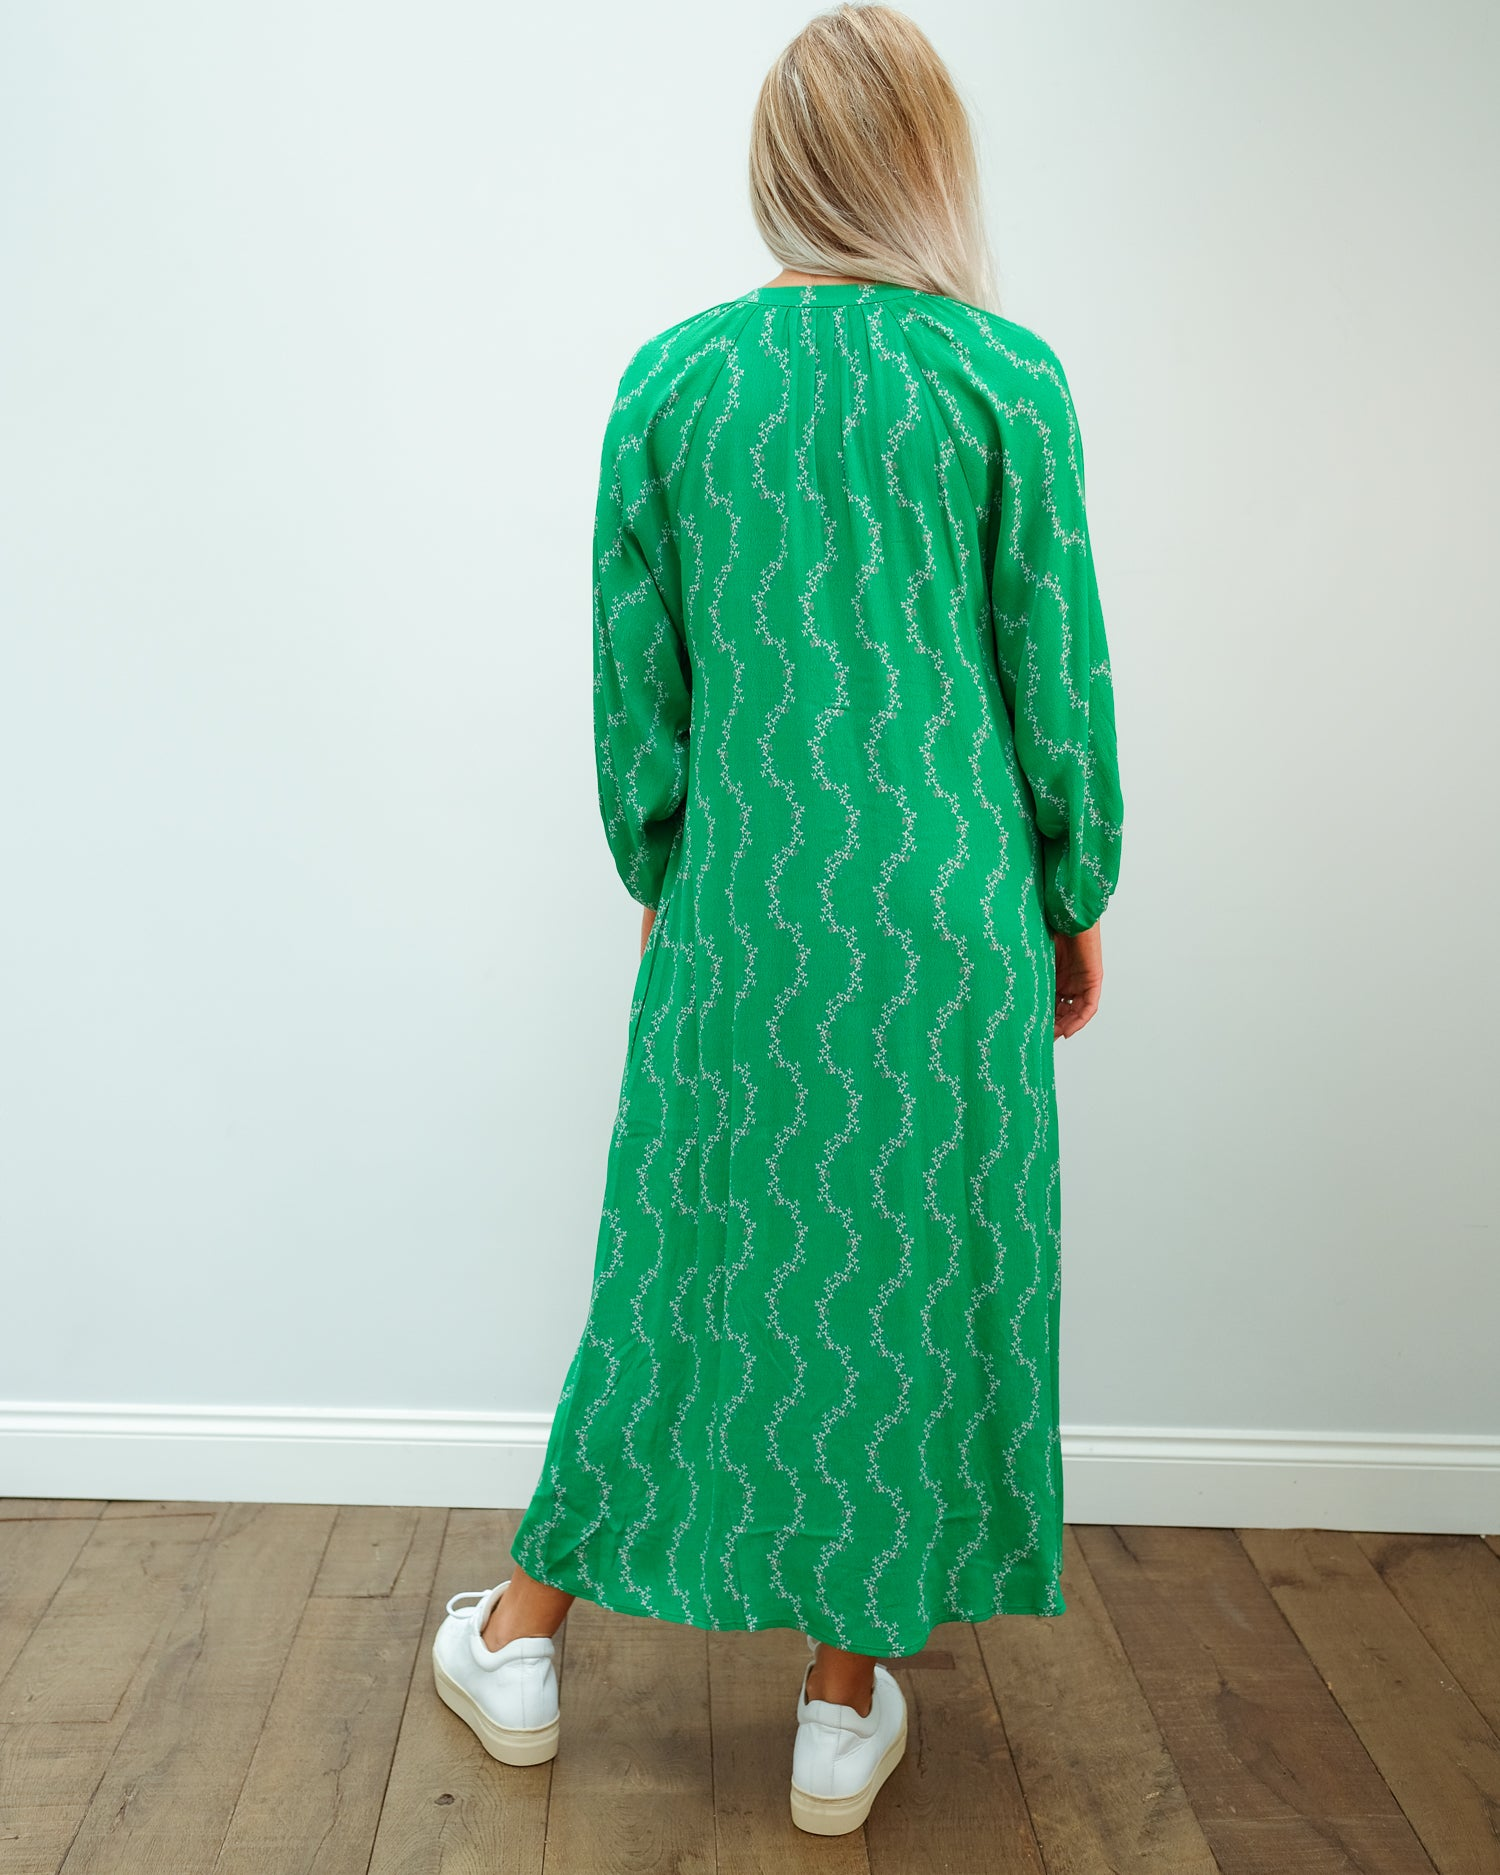 PP Zion Dress in Garland Green